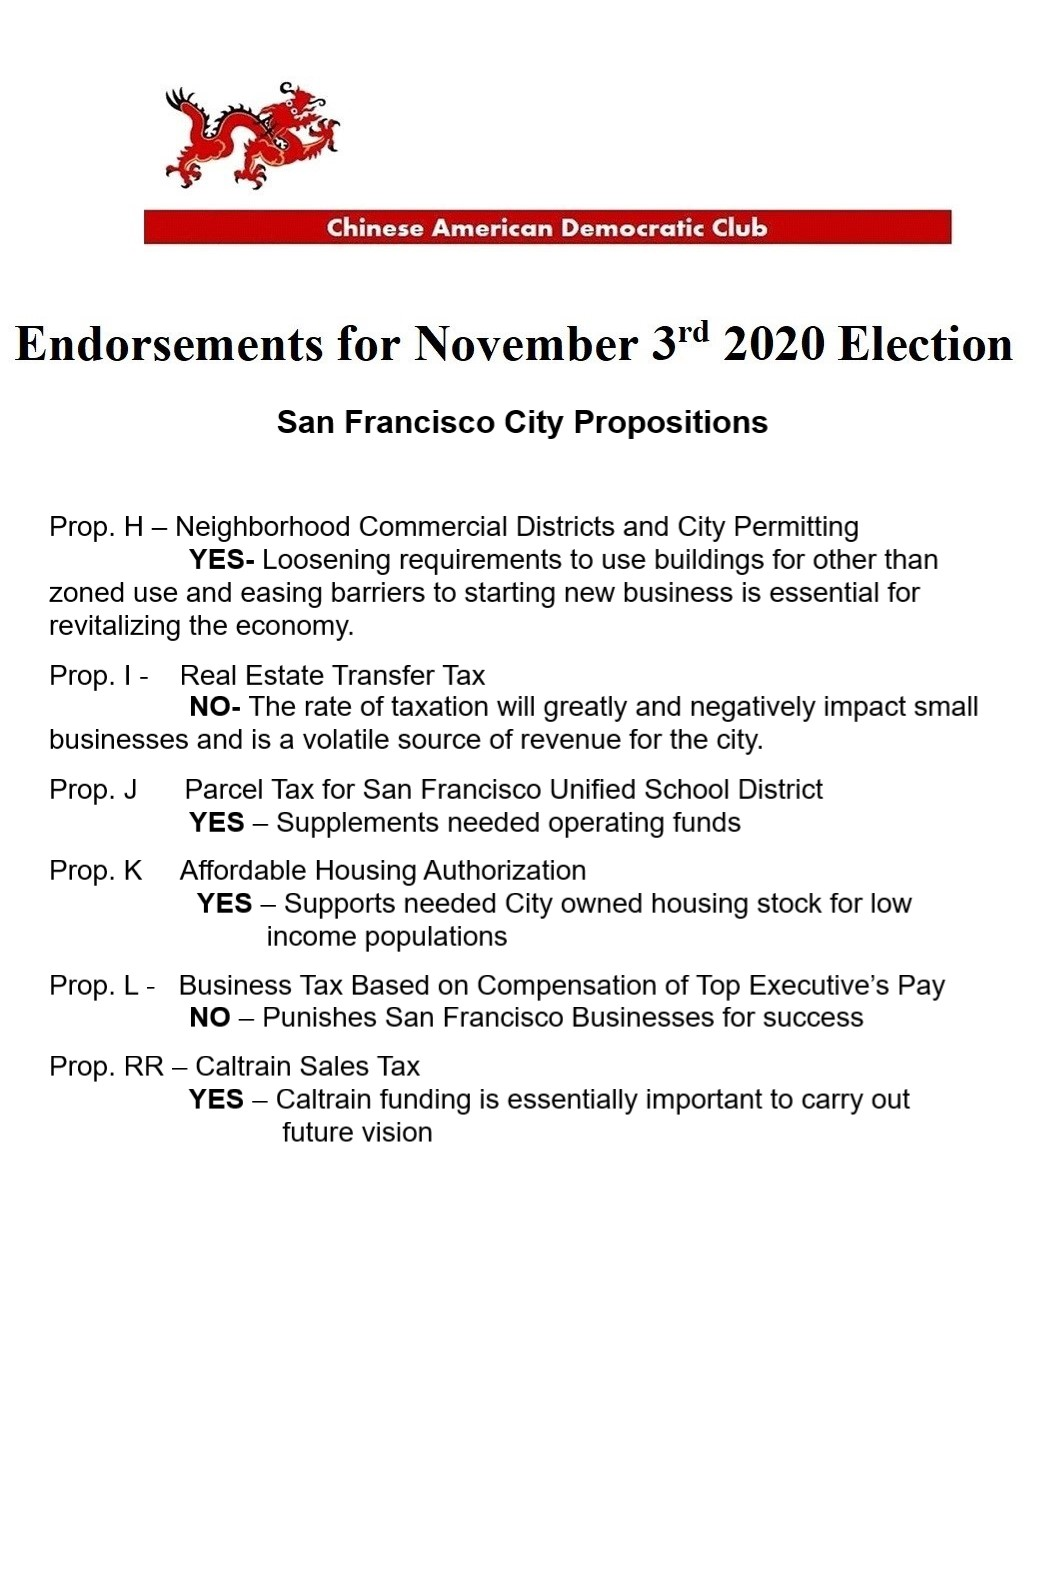 Endorsements_11-2020_Issues4.jpg